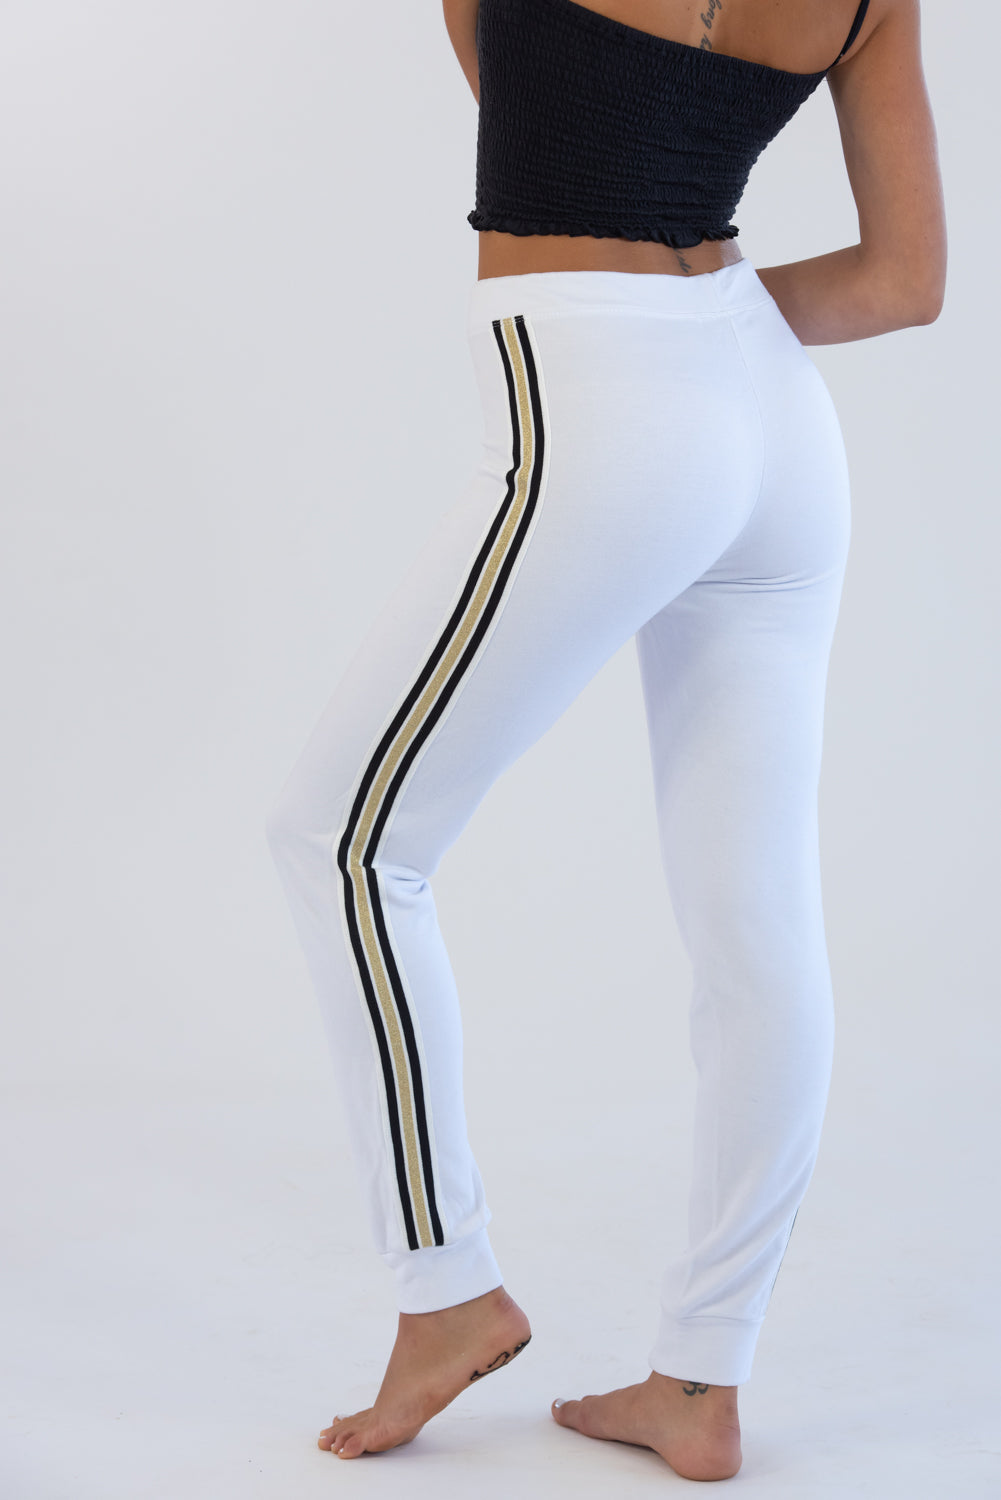 White Sweats W/ Gold Taping